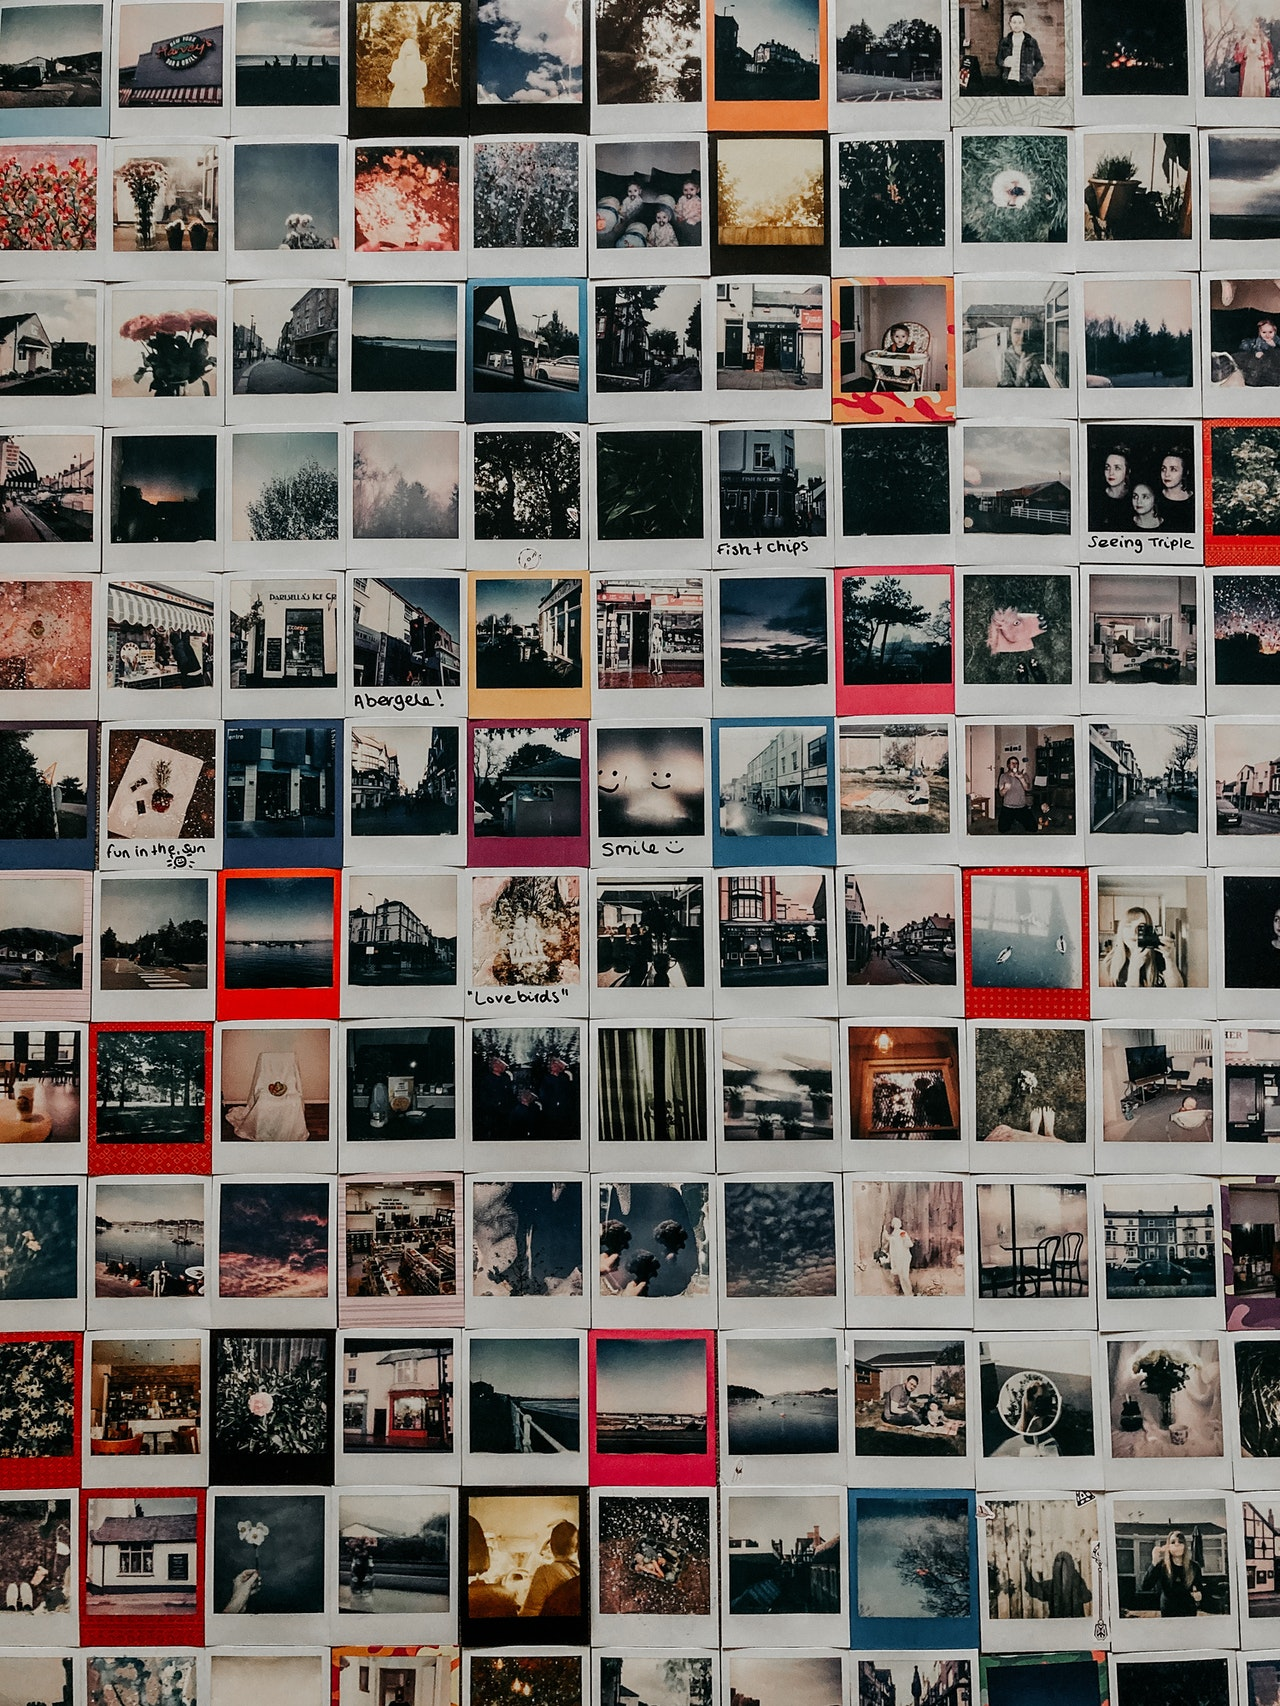 Finland's Capital Helsinki Maintains Massive Treasure Chest of 65,000 Free Photos You Can Use